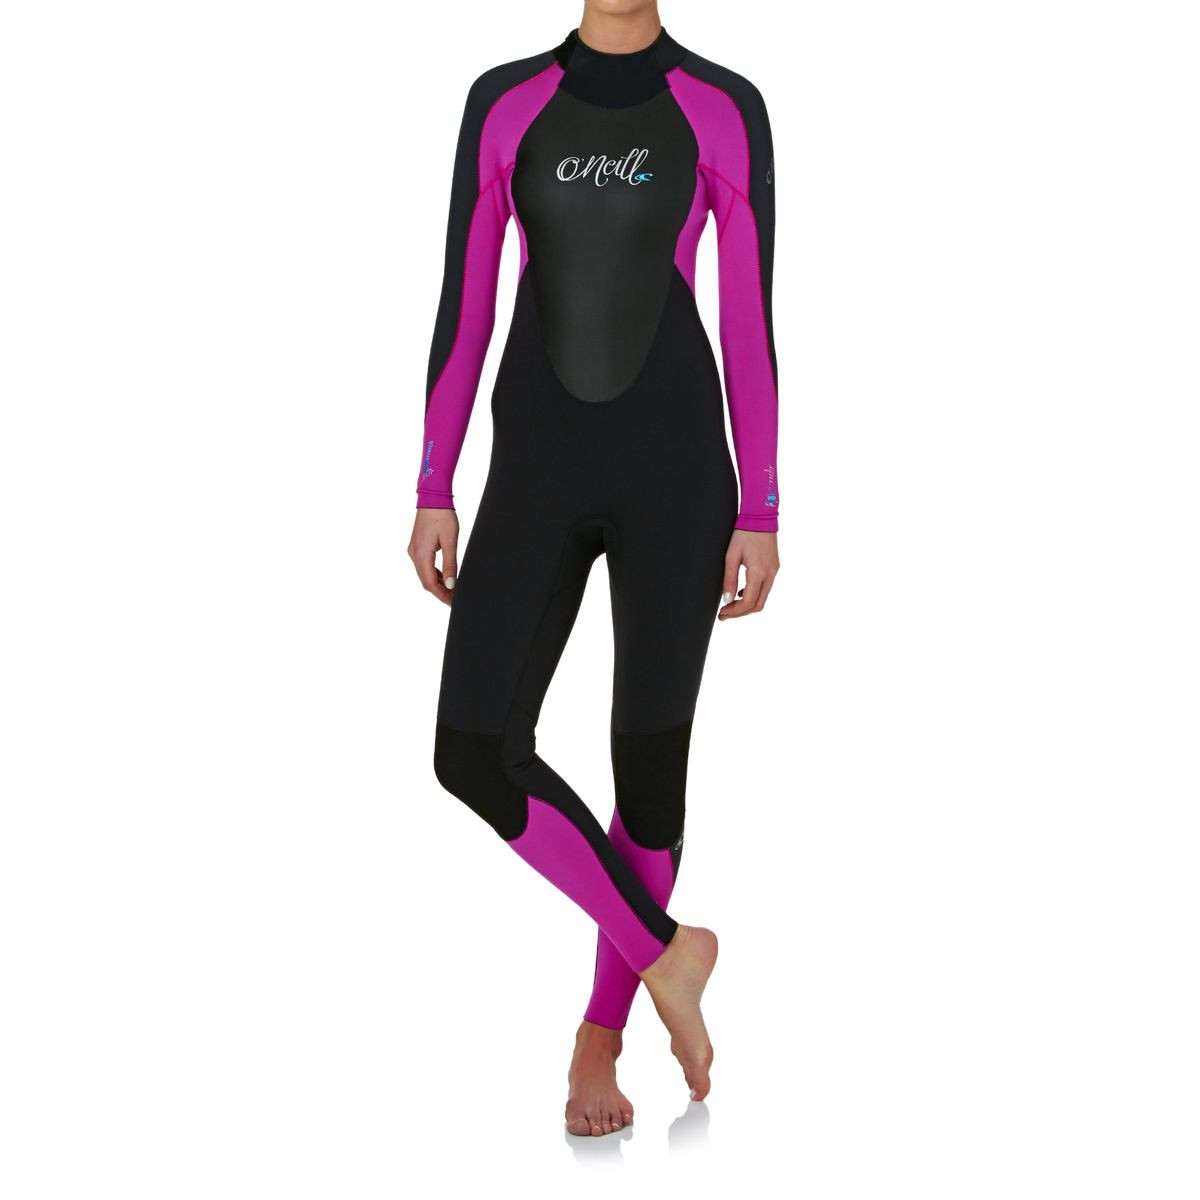 O'Neill Womens Epic 3/2mm Back Zip Wetsuit - Black/ Berry/ Graphite